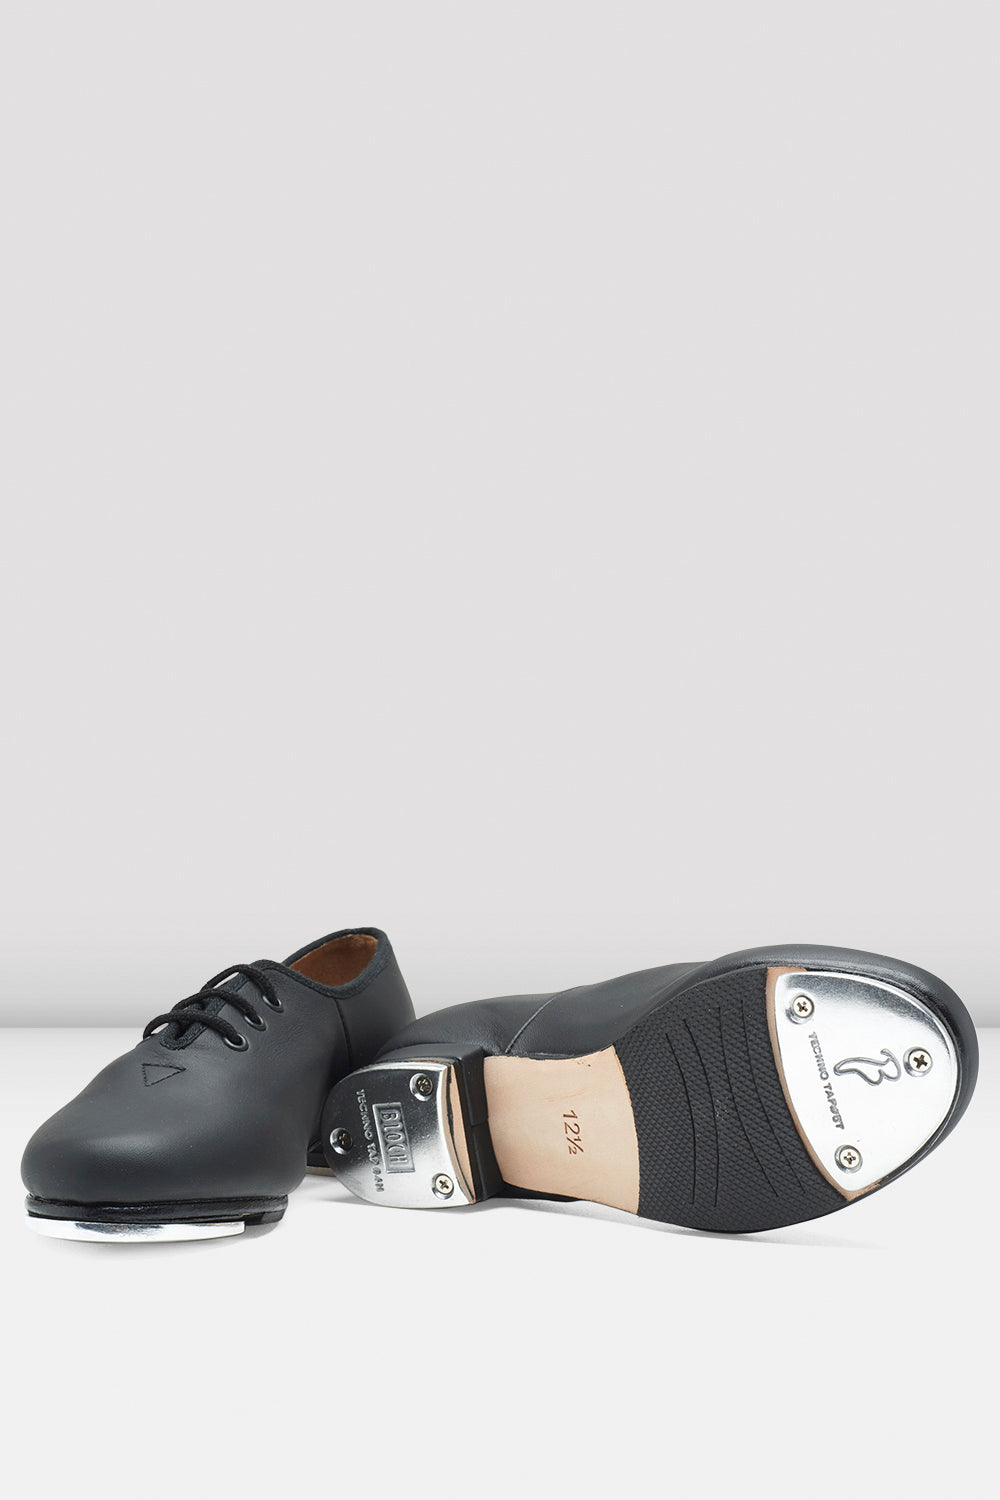 Childrens Jazz Tap Leather Tap Shoes